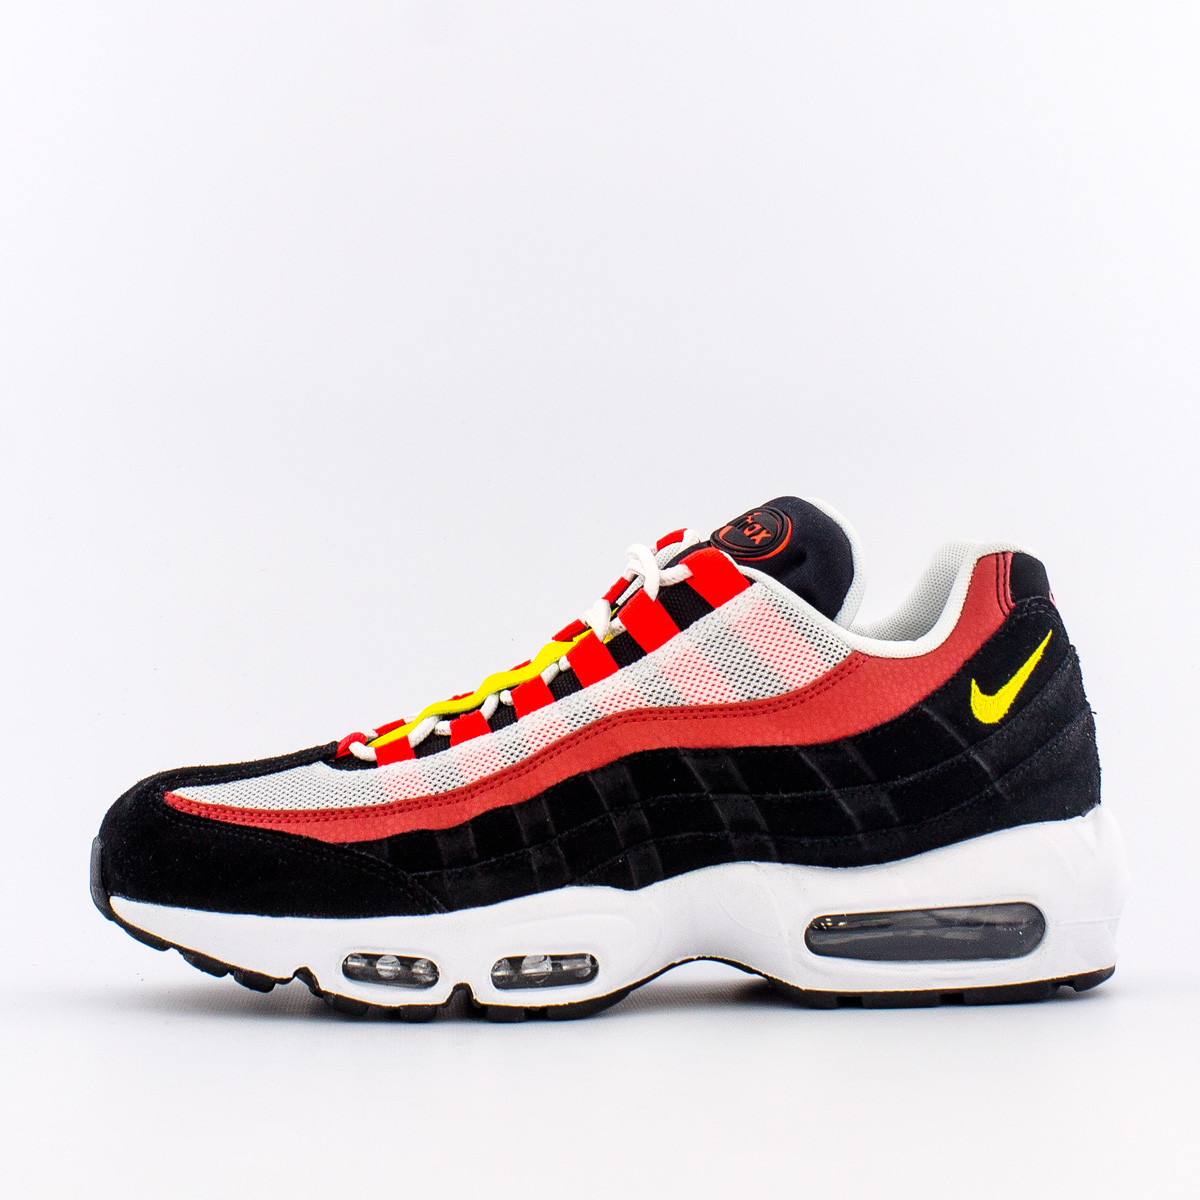 Nike Air Max 95 Black Red Yellow The Hypeless